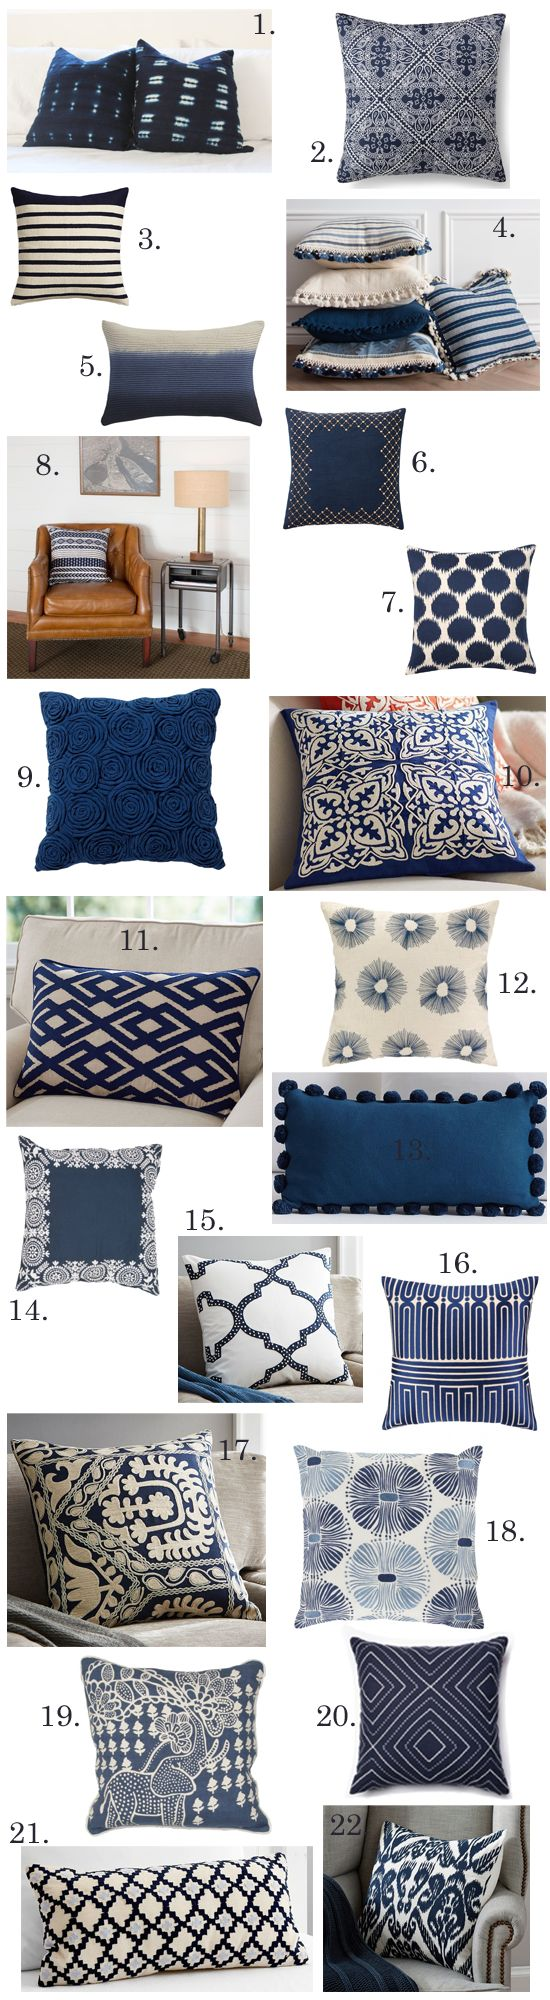 Building A Dream House Navy Throw Pillows